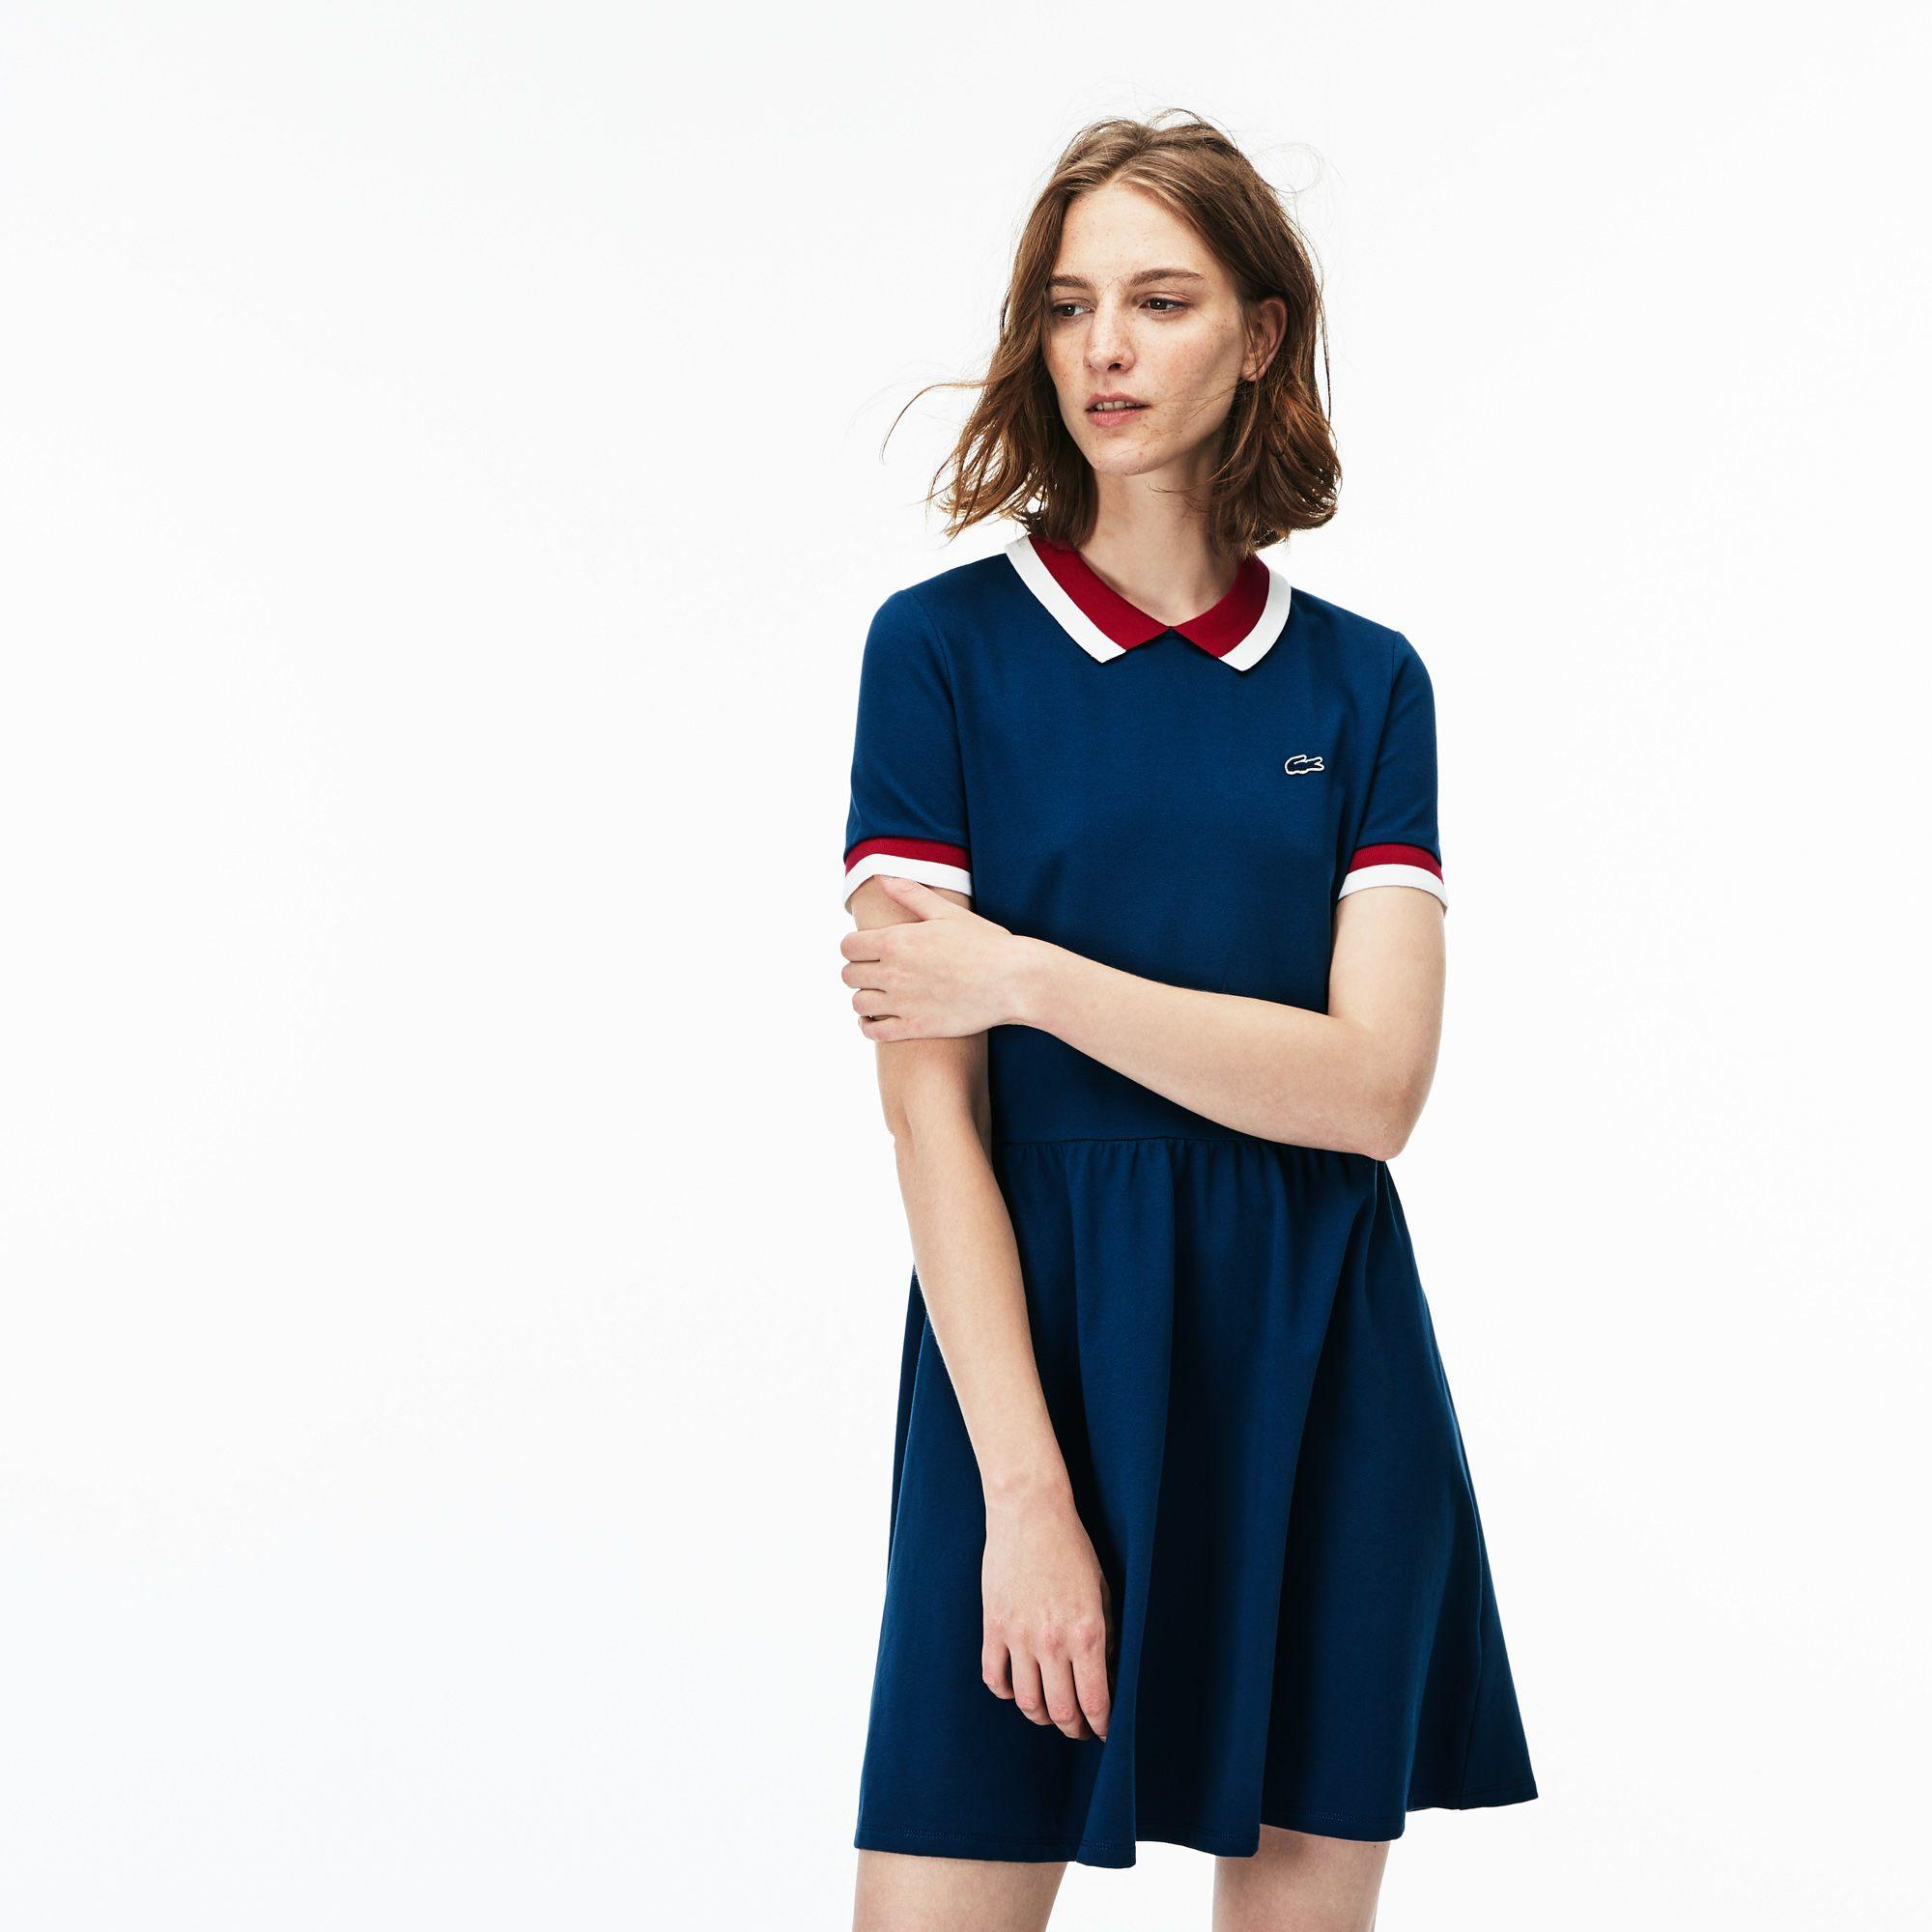 0d5a0a765bb4 Lacoste Women s Contrast Finishes Flared Stretch Mini PiquÉ Polo Dress In  Blue   Red   White